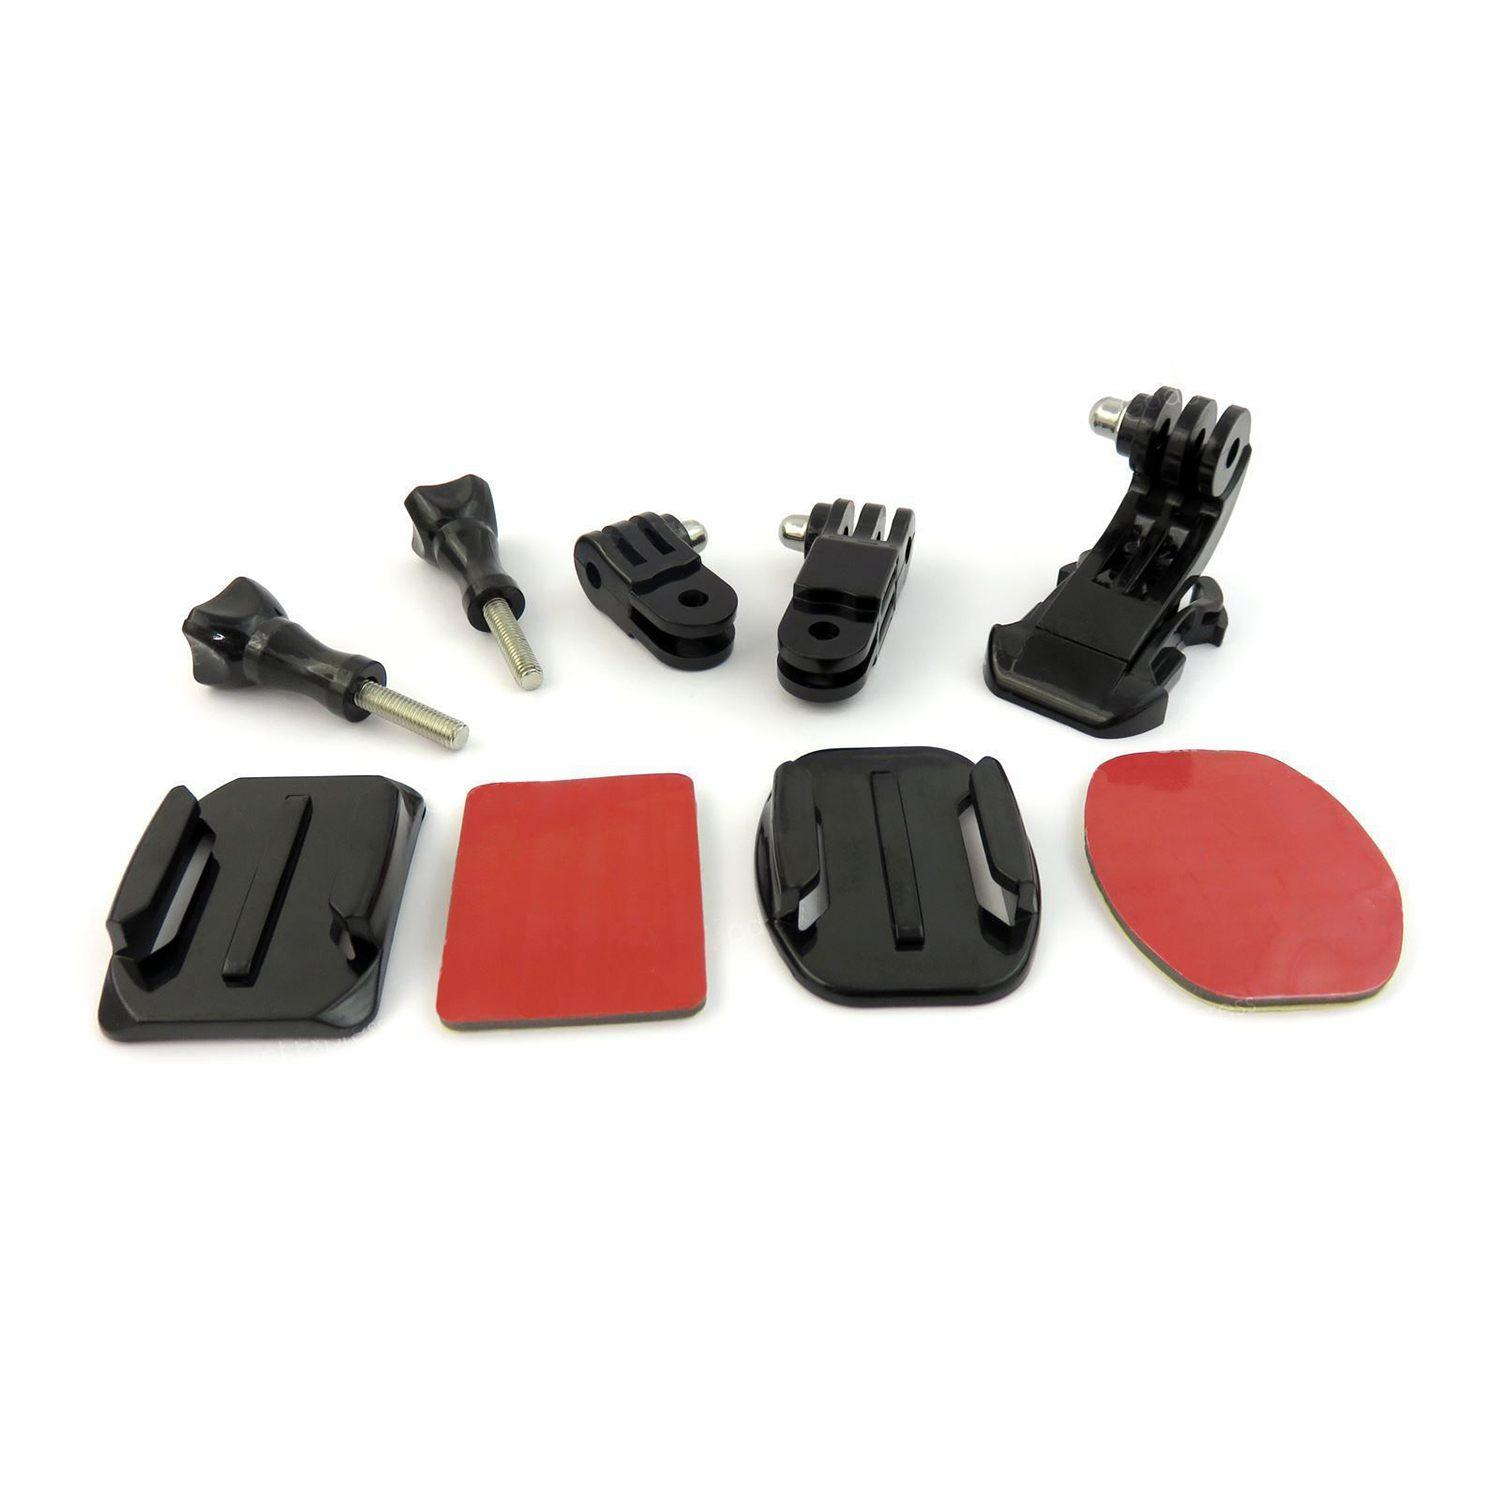 9 In 1 Helmet Front Side Quick Clip Mount Kit For Gopro Hero 6 5 4 3 2 Session By Jonesmayer.